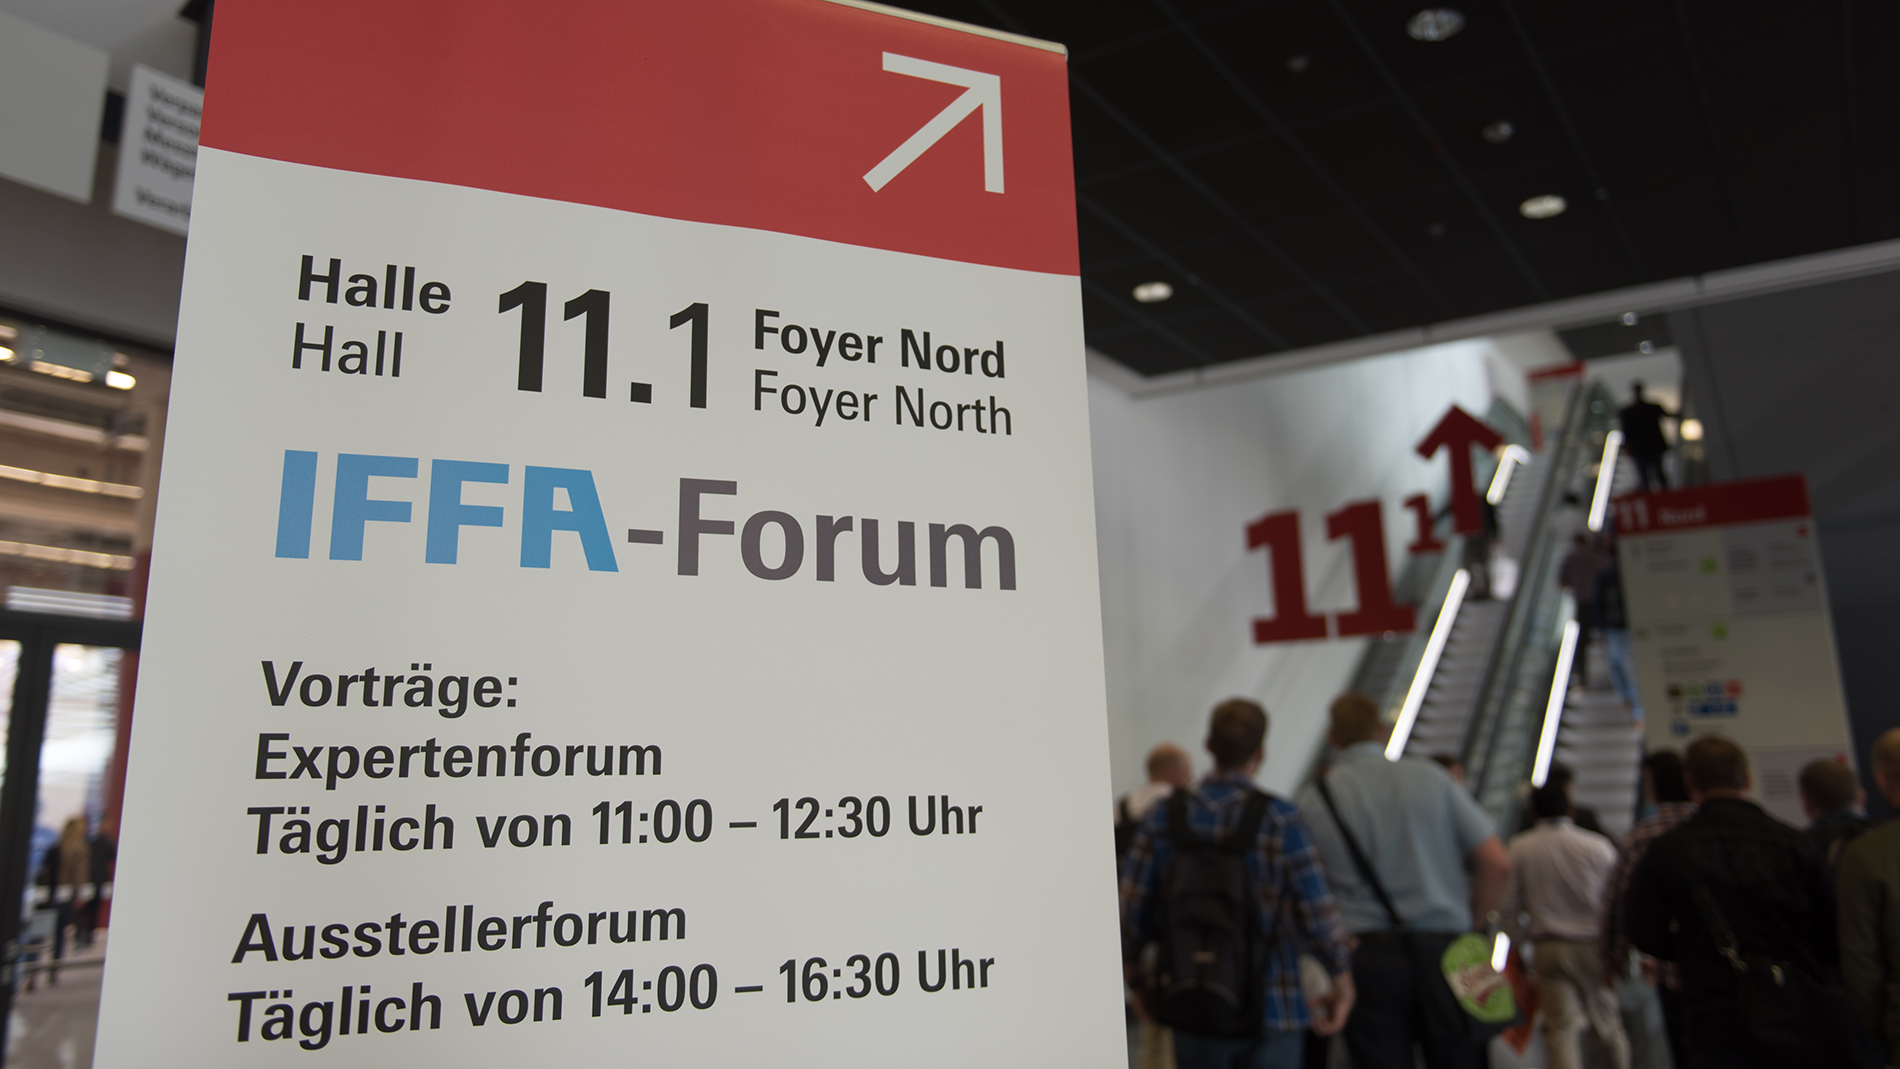 Information sign for IFFA-Forum